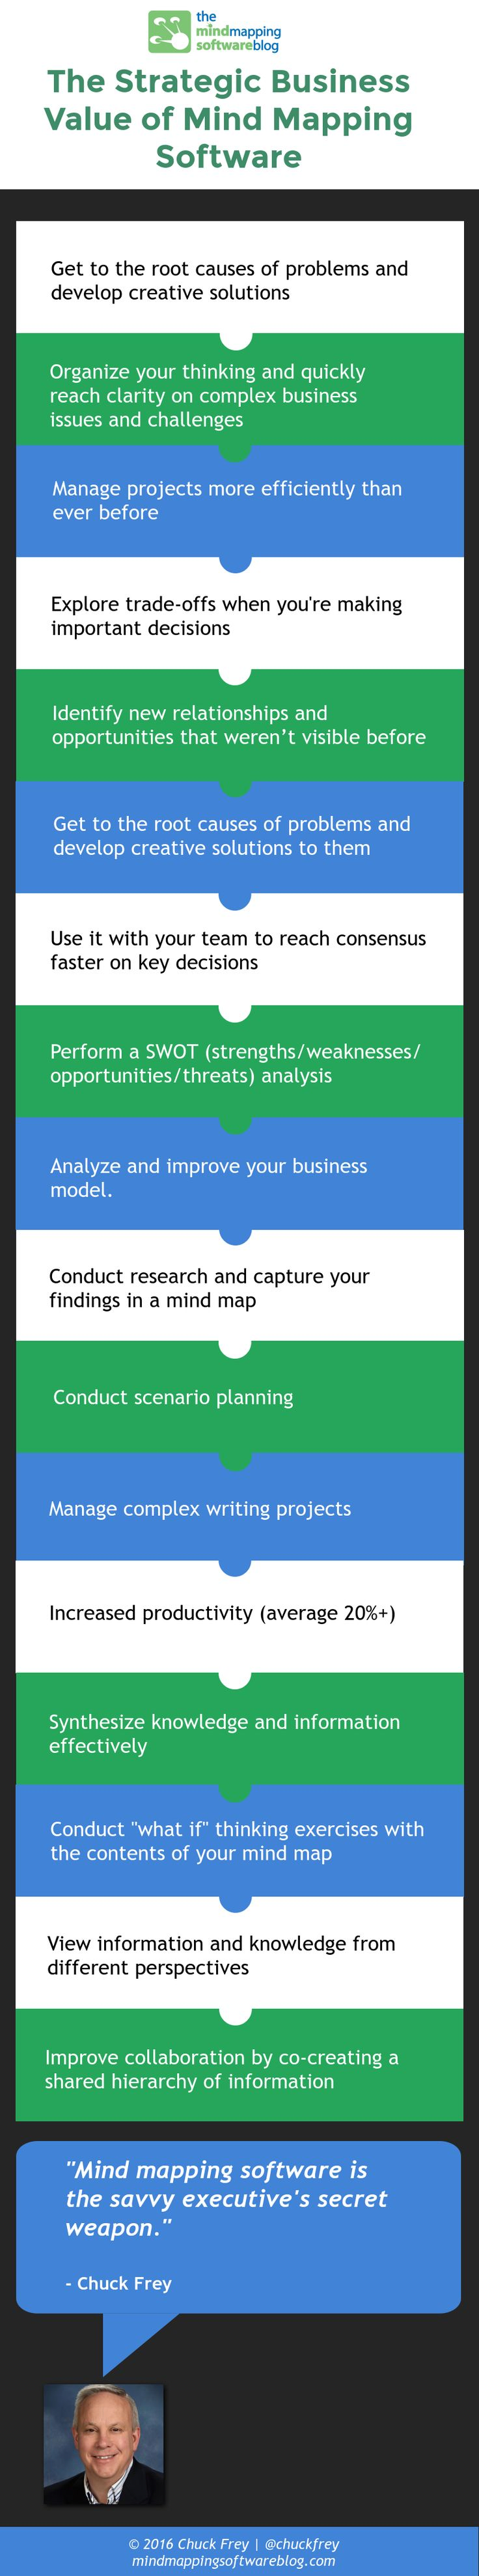 Check out brainstorming software such as smart ideas to help you - This New Infographic Summarizes 17 Compelling Ways In Which Mind Mapping Software Can Add Strategic Value To Your Work